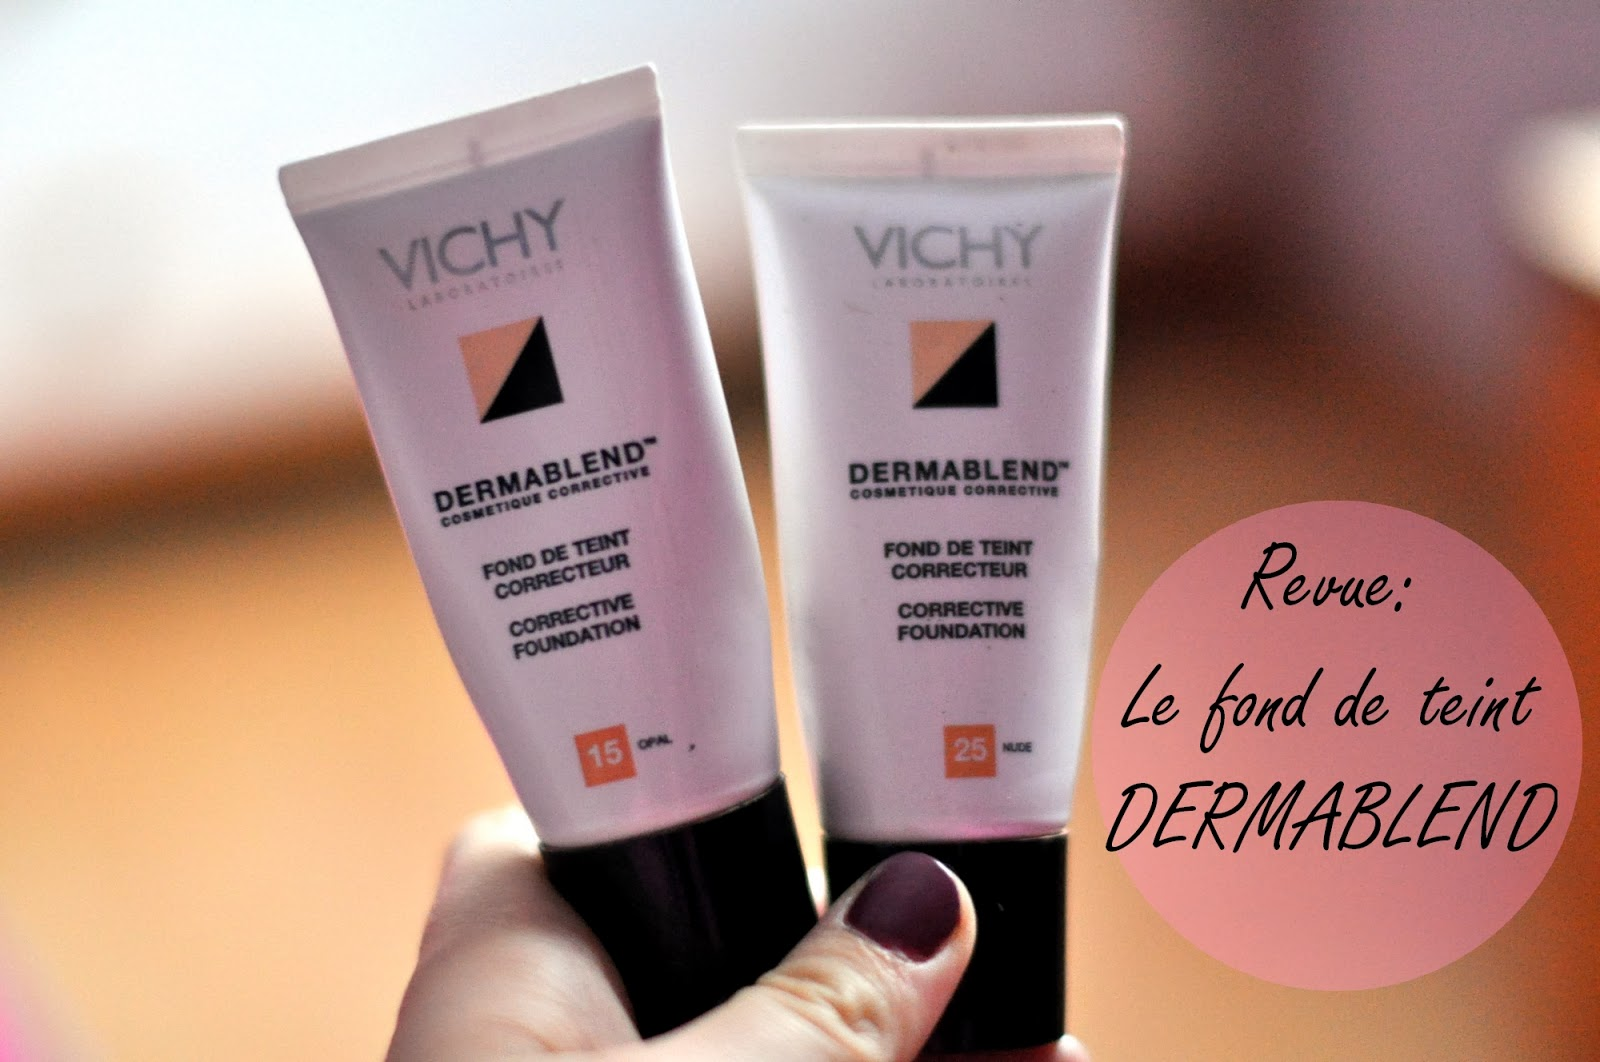 le fond de teint dermablend de vichy mon produit phare my girly closet. Black Bedroom Furniture Sets. Home Design Ideas